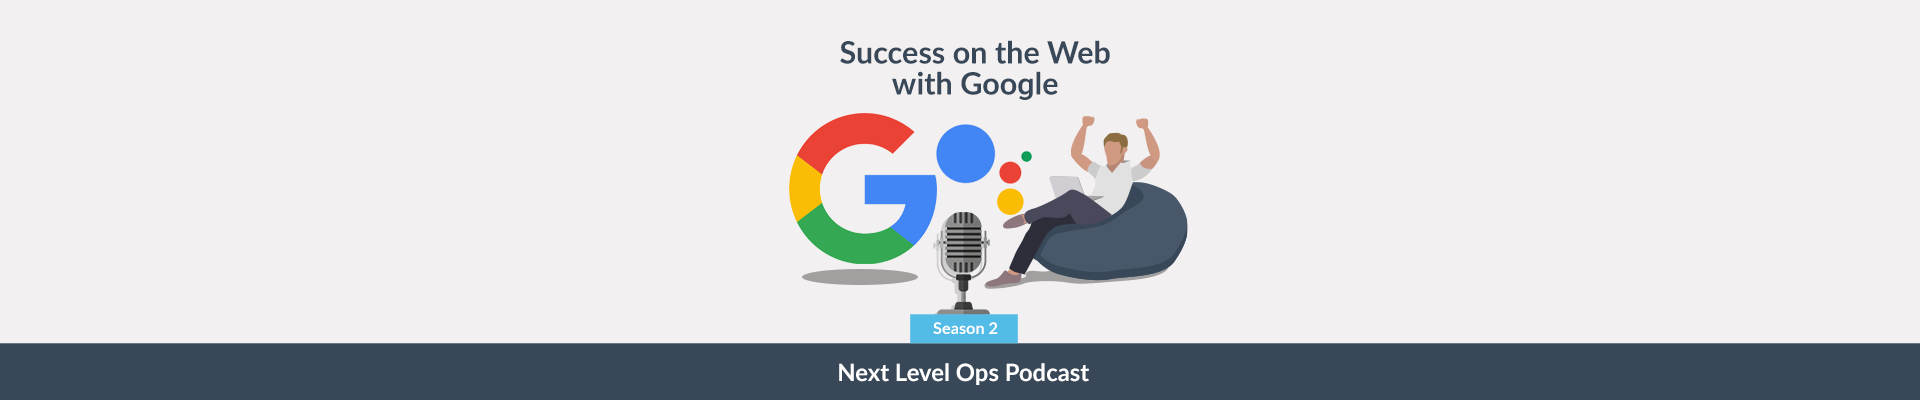 Podcast season 2 google success on the web Plesk